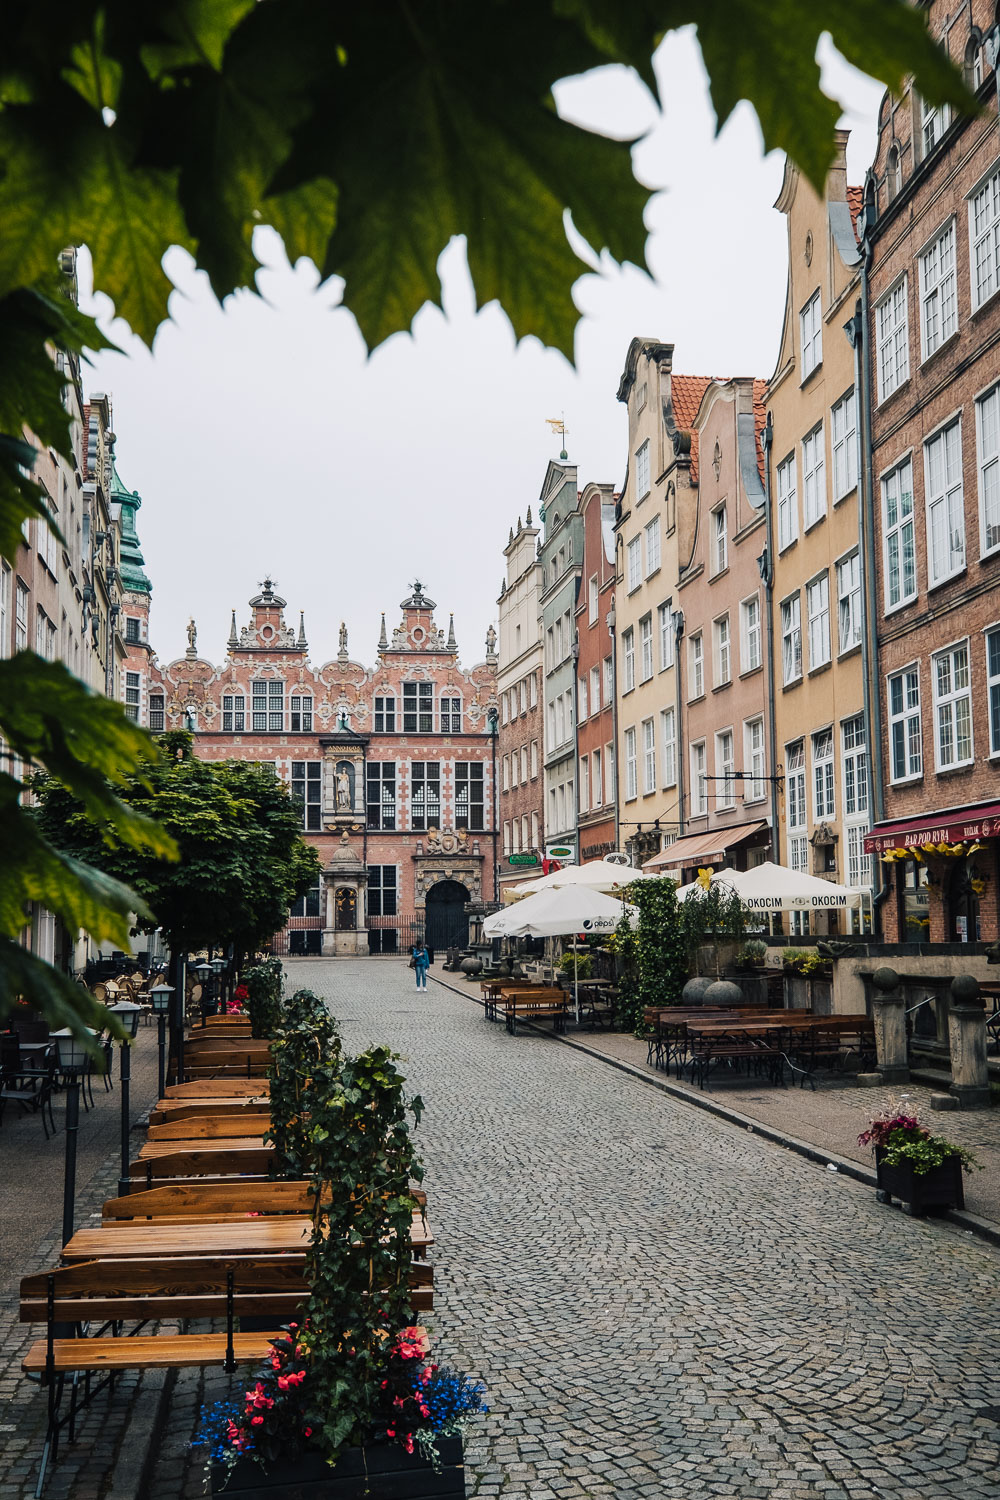 Ulica Piwna (Beer Street) in Gdansk | Things to do in 48 hours in Gdansk, Poland